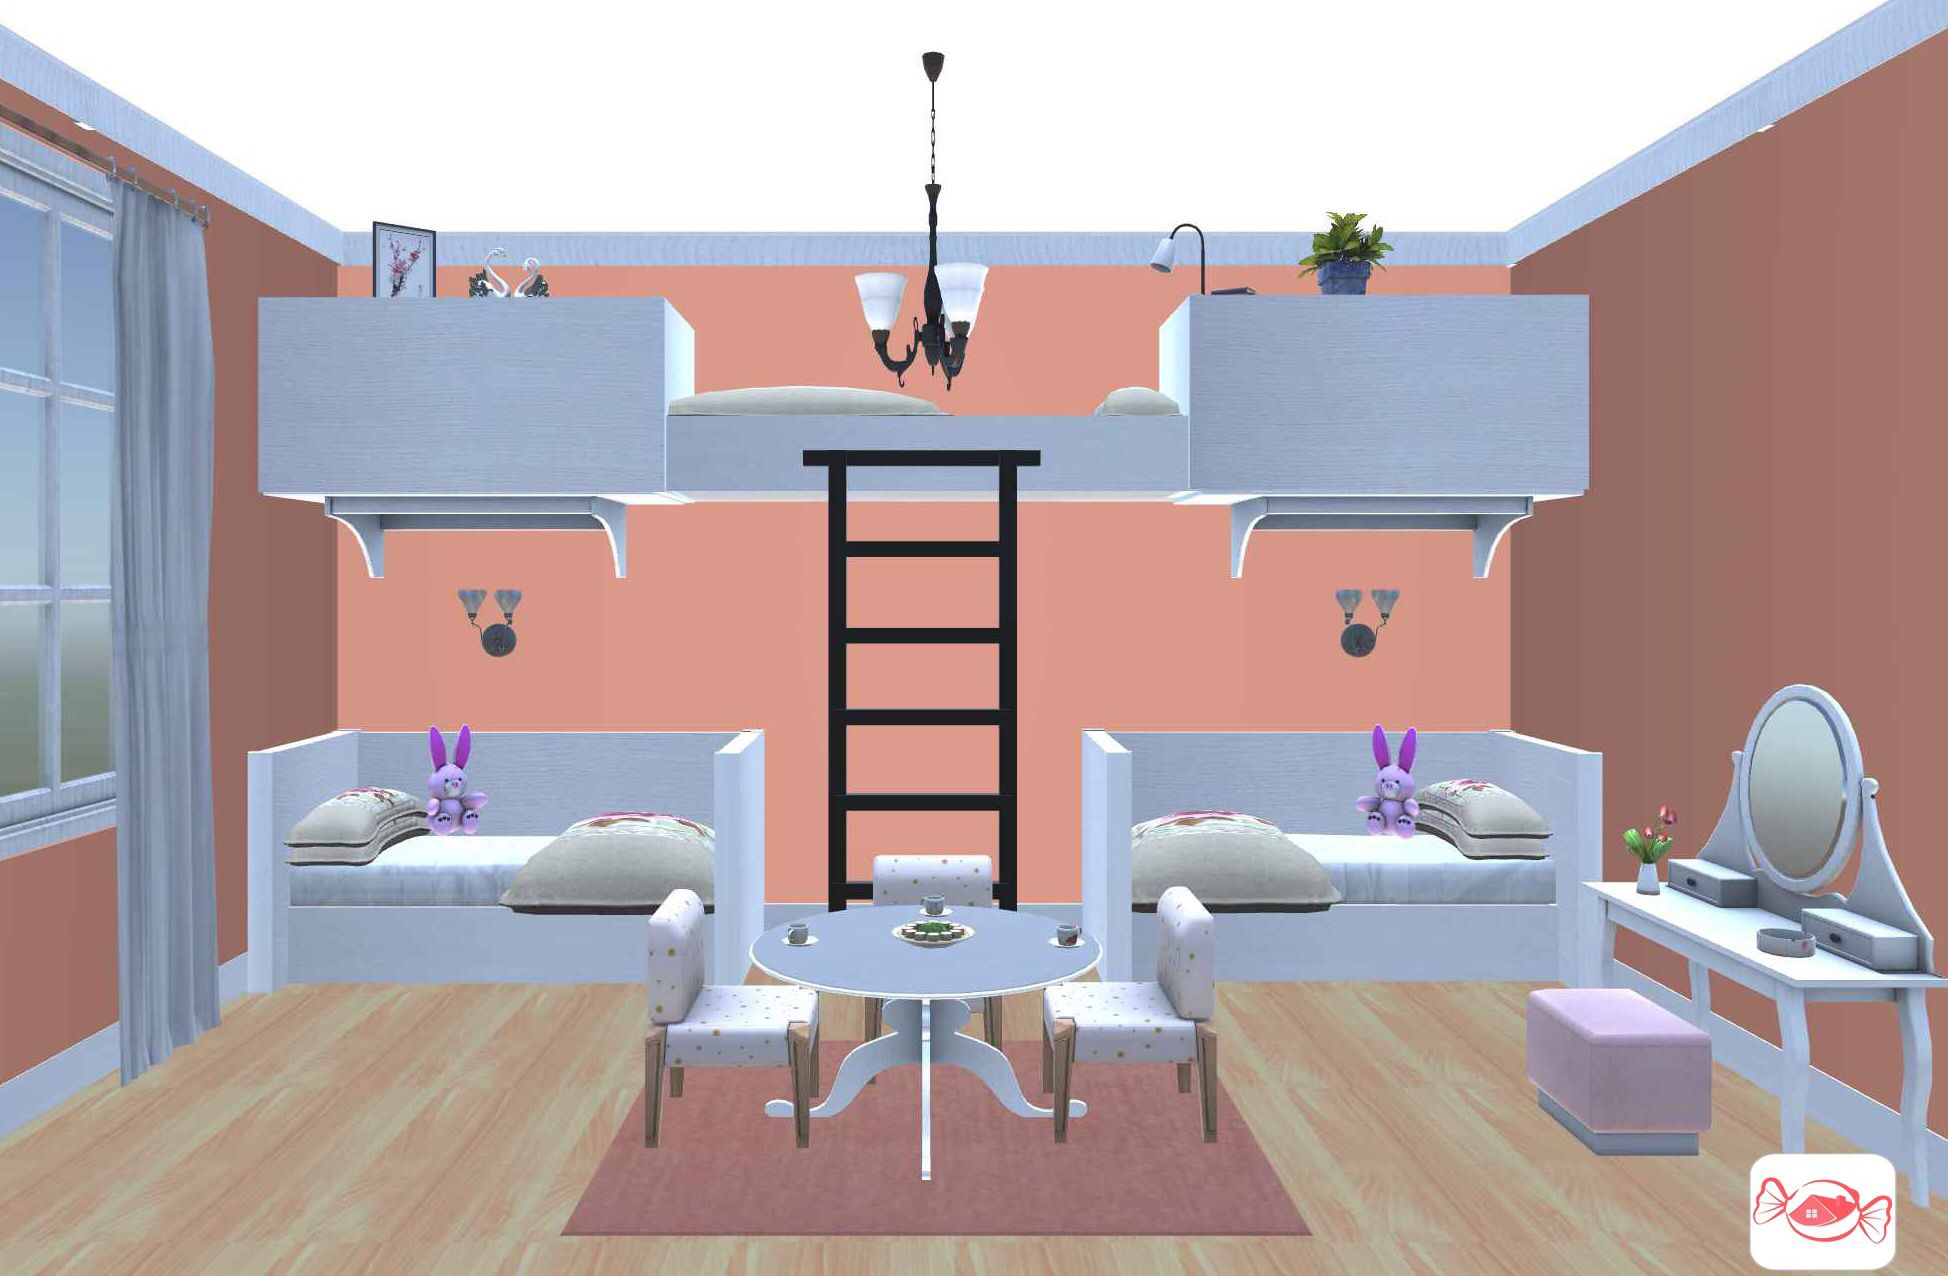 Girls bedroom design created with Home Sweet Home 3D app